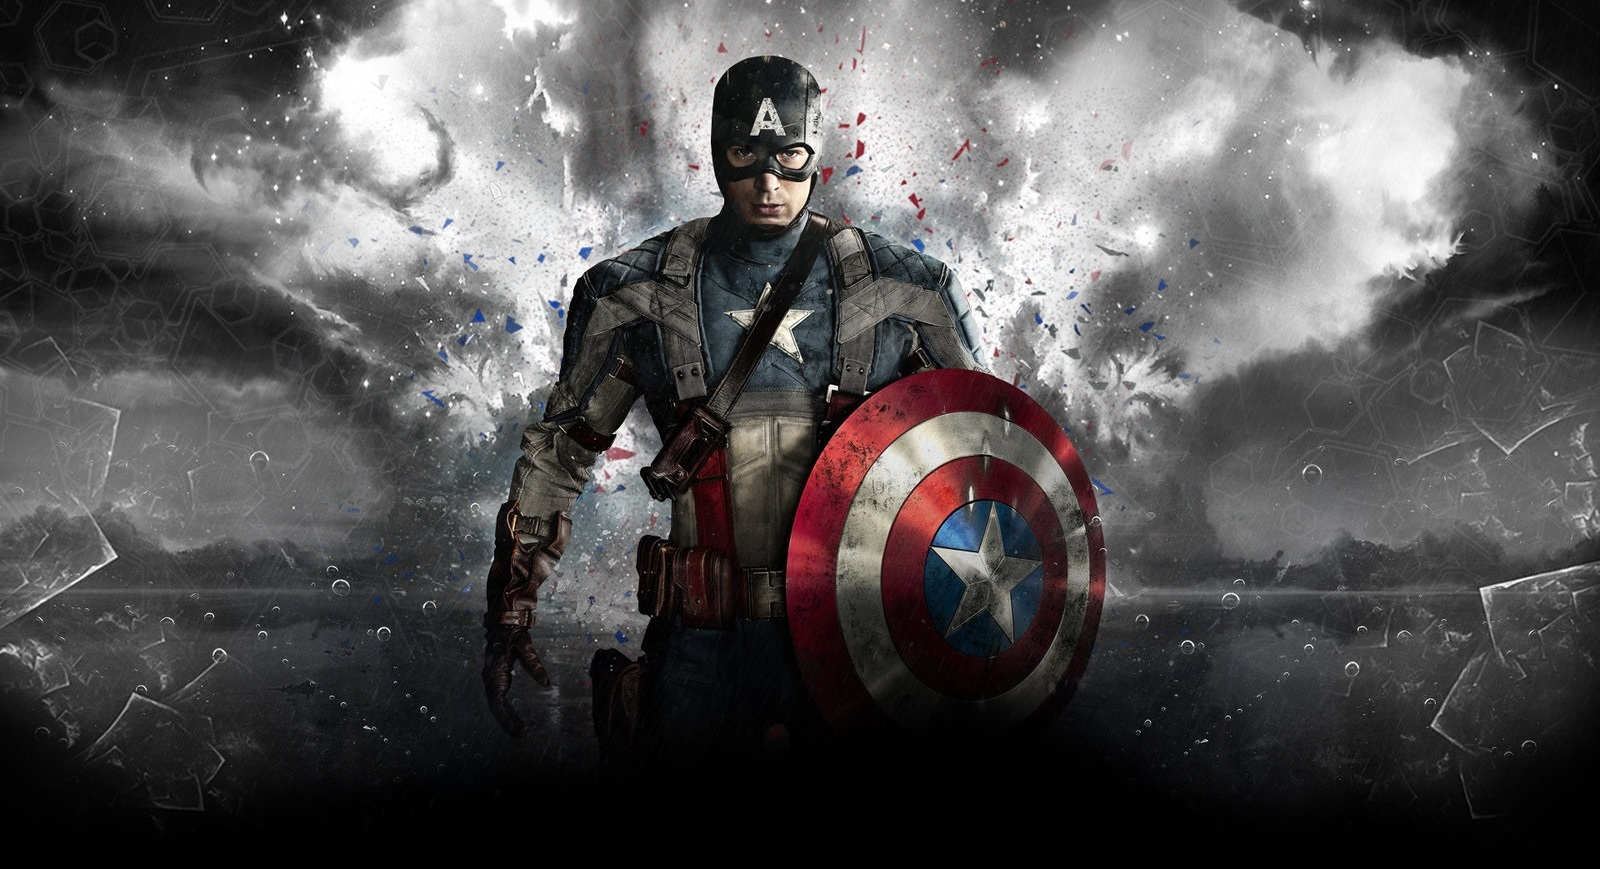 Captain America Hd Wallpapers Wallpapersafari